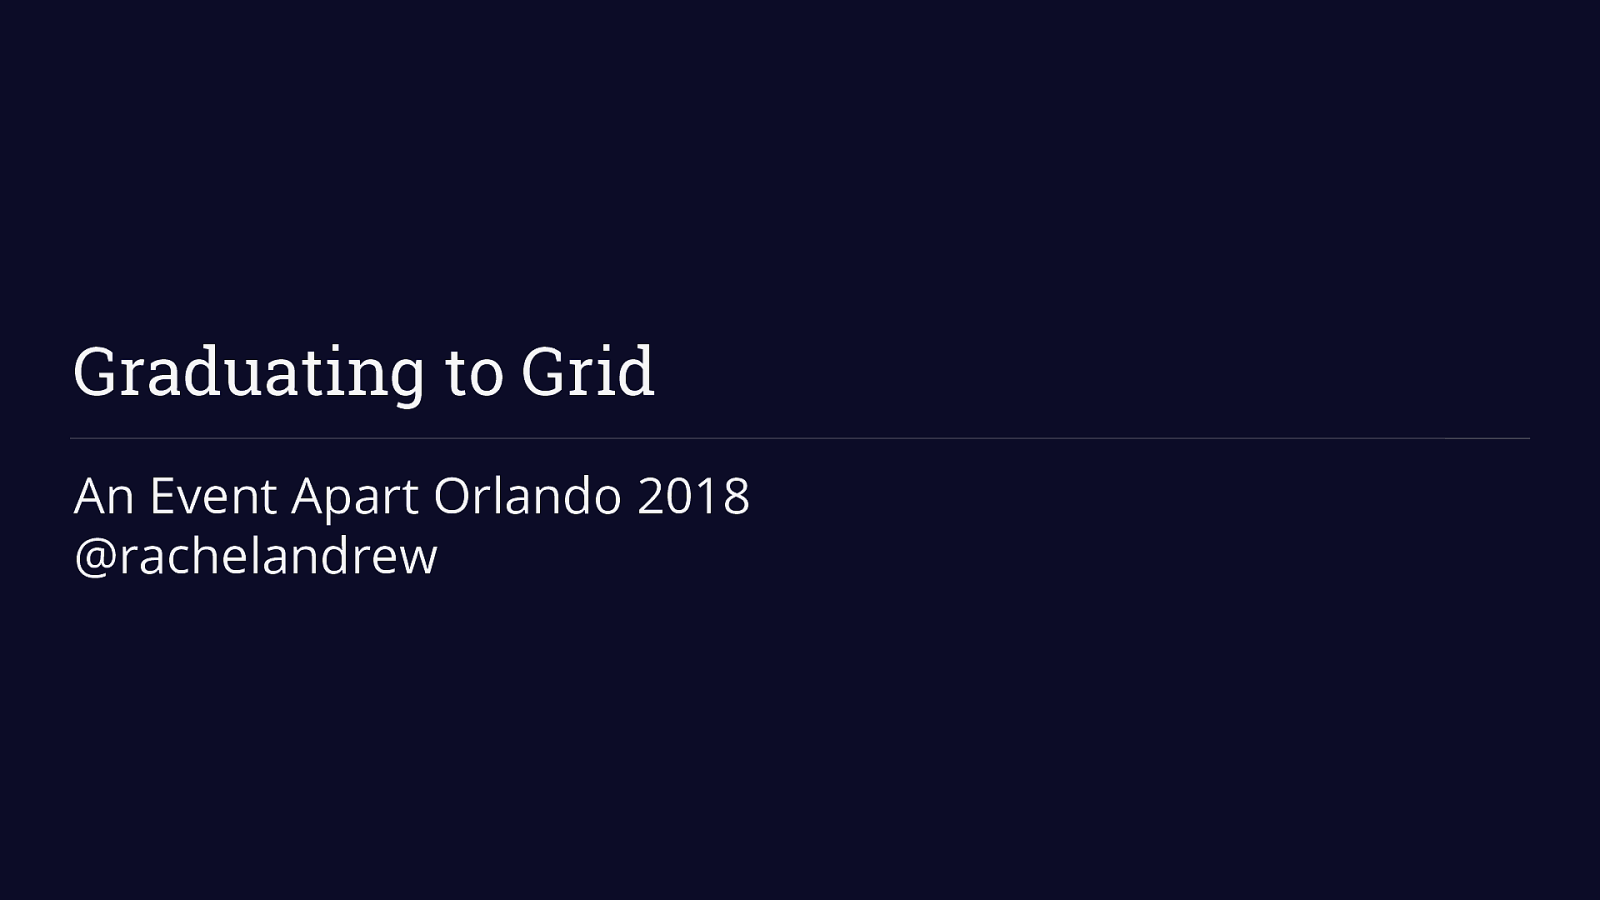 Graduating to Grid